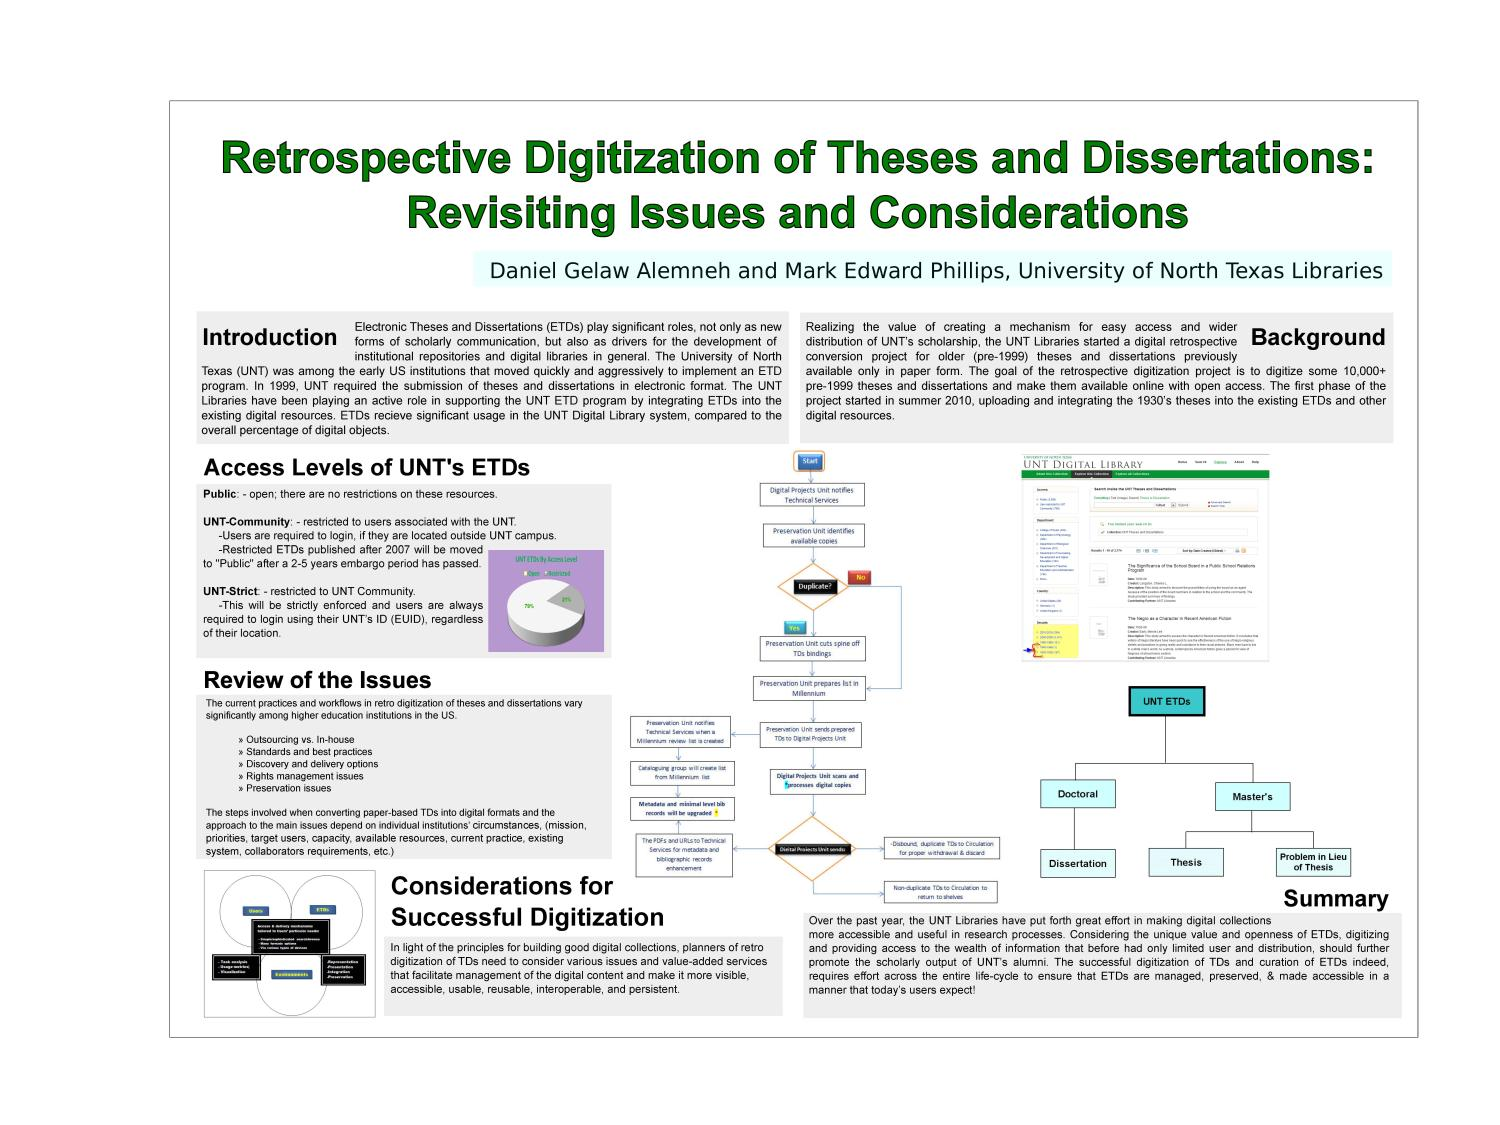 project management approach to theses and dissertations A project-management approach to the dissertation many graduate students struggle to make steady progress on their dissertations not because they are unsure of their research or they lack writing skills but because they lack a well-articulated plan to manage the document's production over a long period of time.